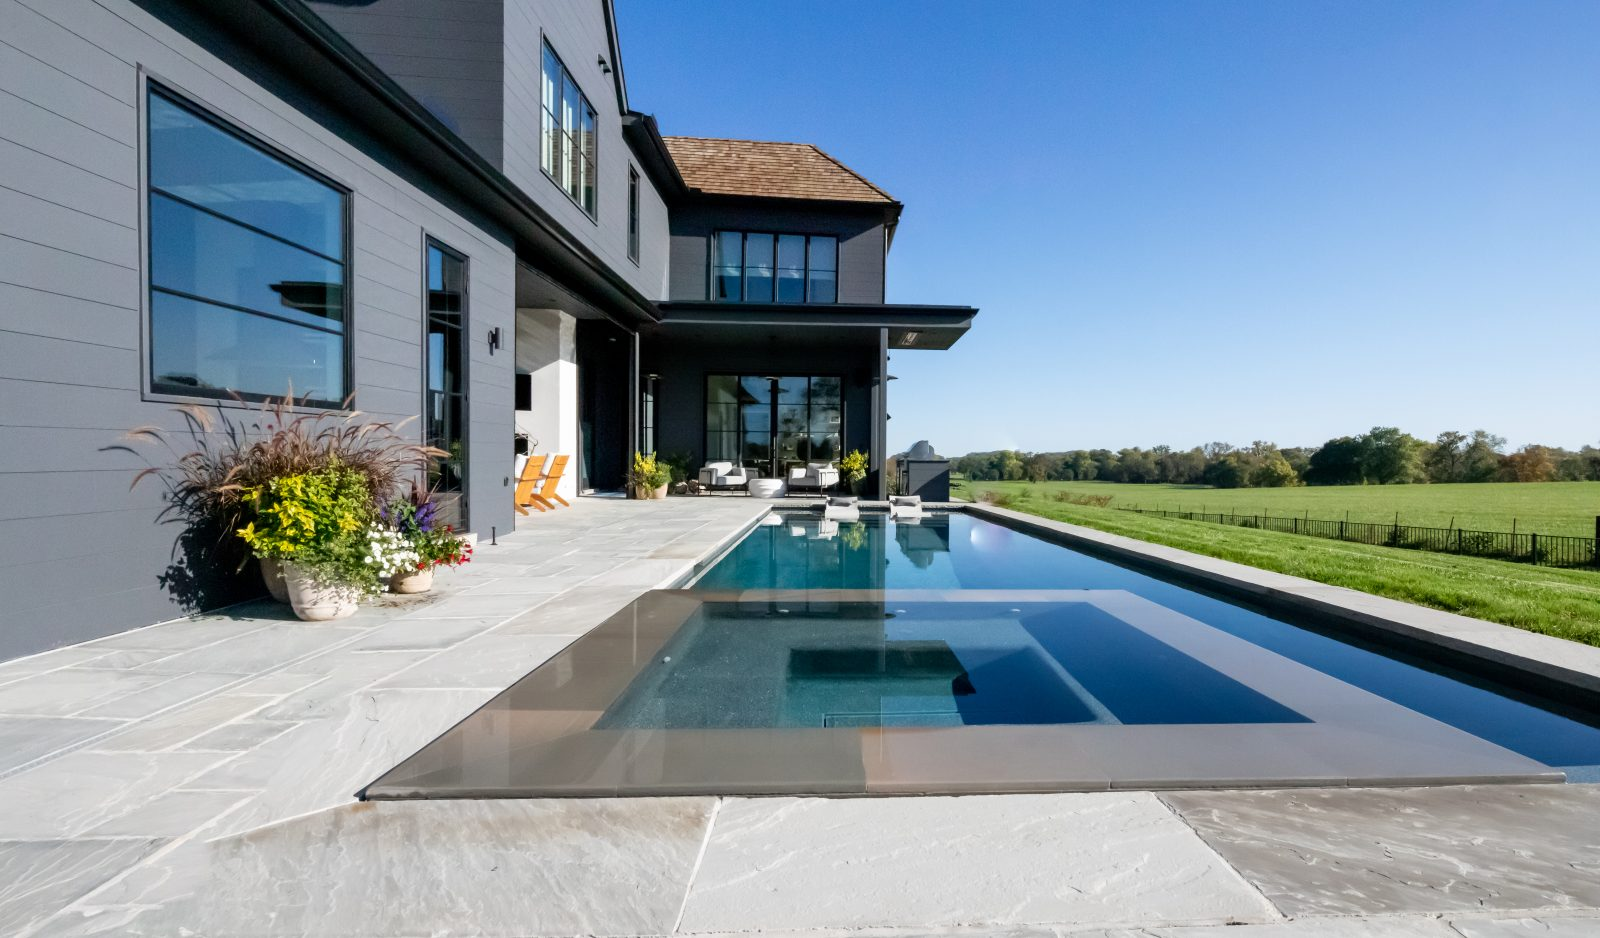 Infinity pool and hot tub with slate deck